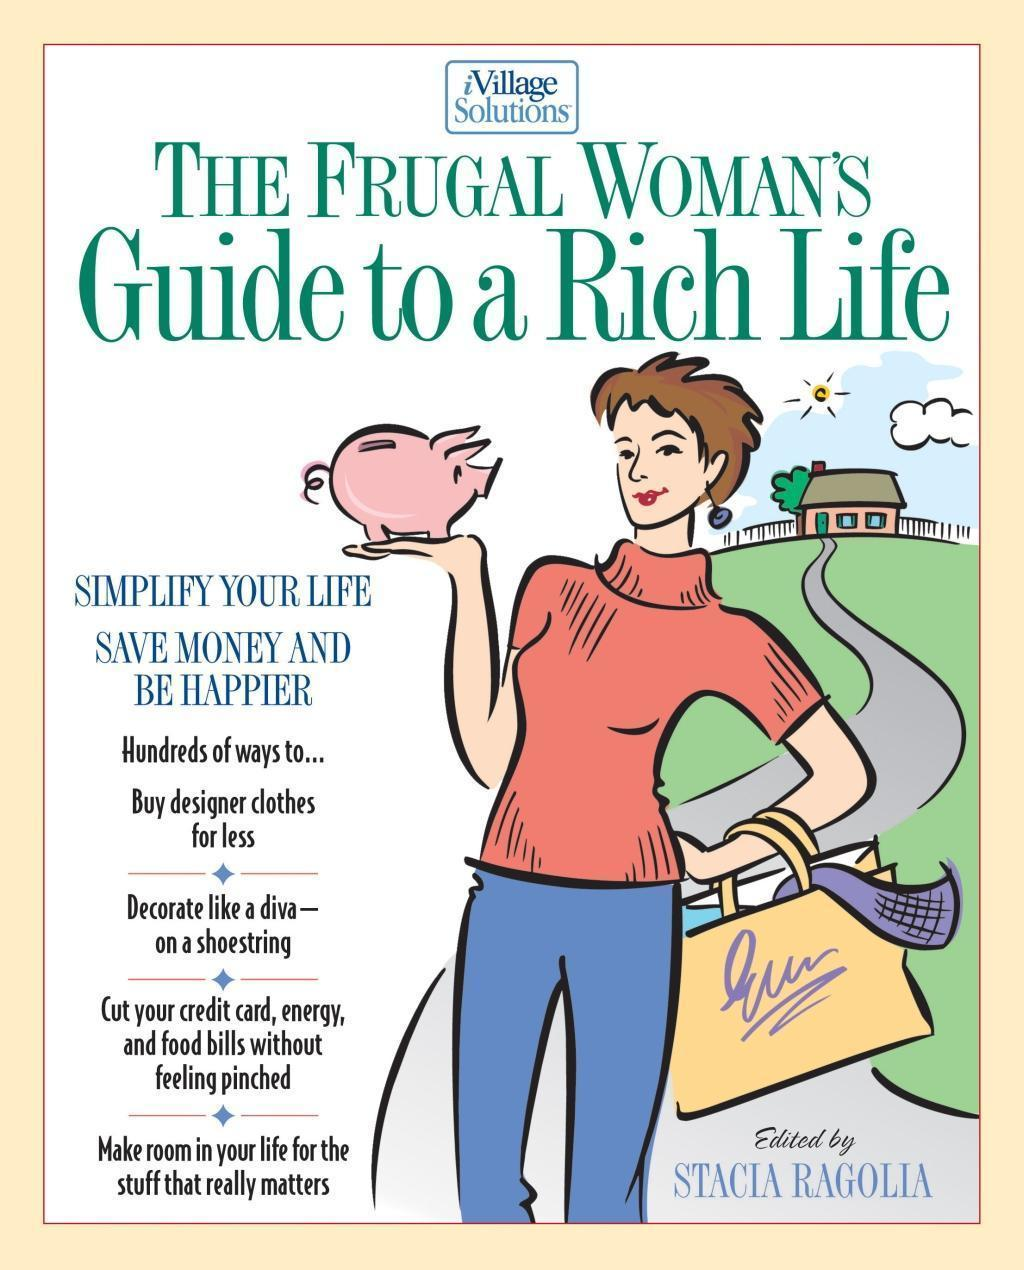 The Frugal Woman's Guide to a Rich Life